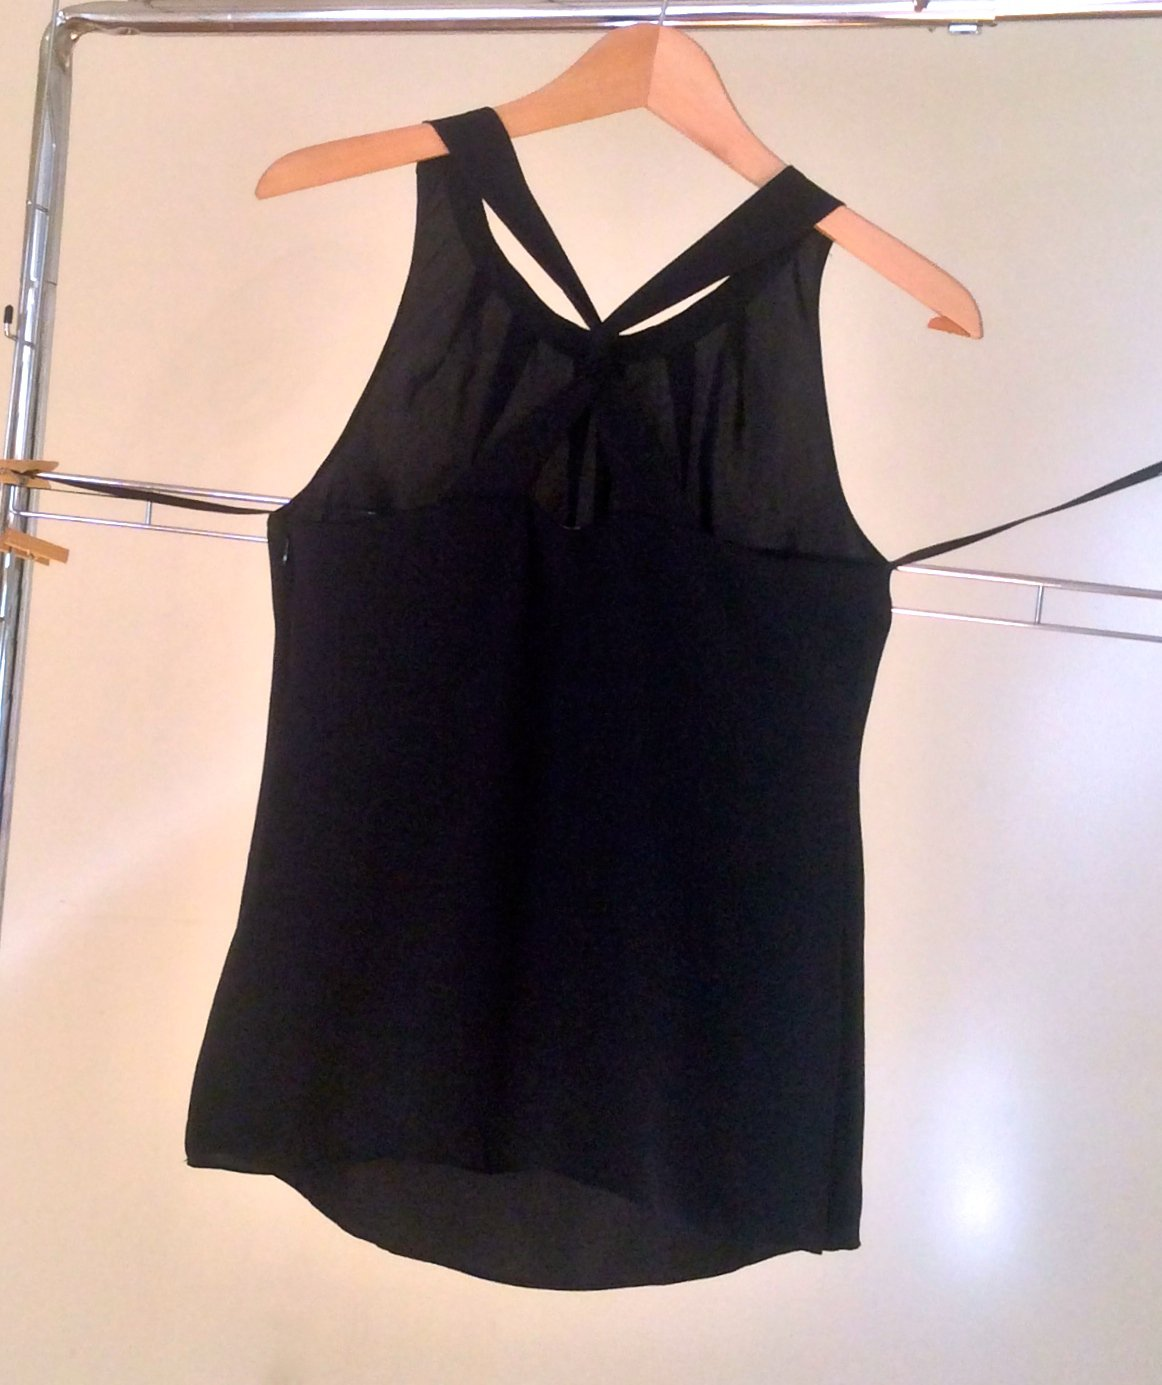 NEW Banana Republic Sleeveless Top Black Silk Twist Back Tank Sophisticated Cocktail Club Outfit